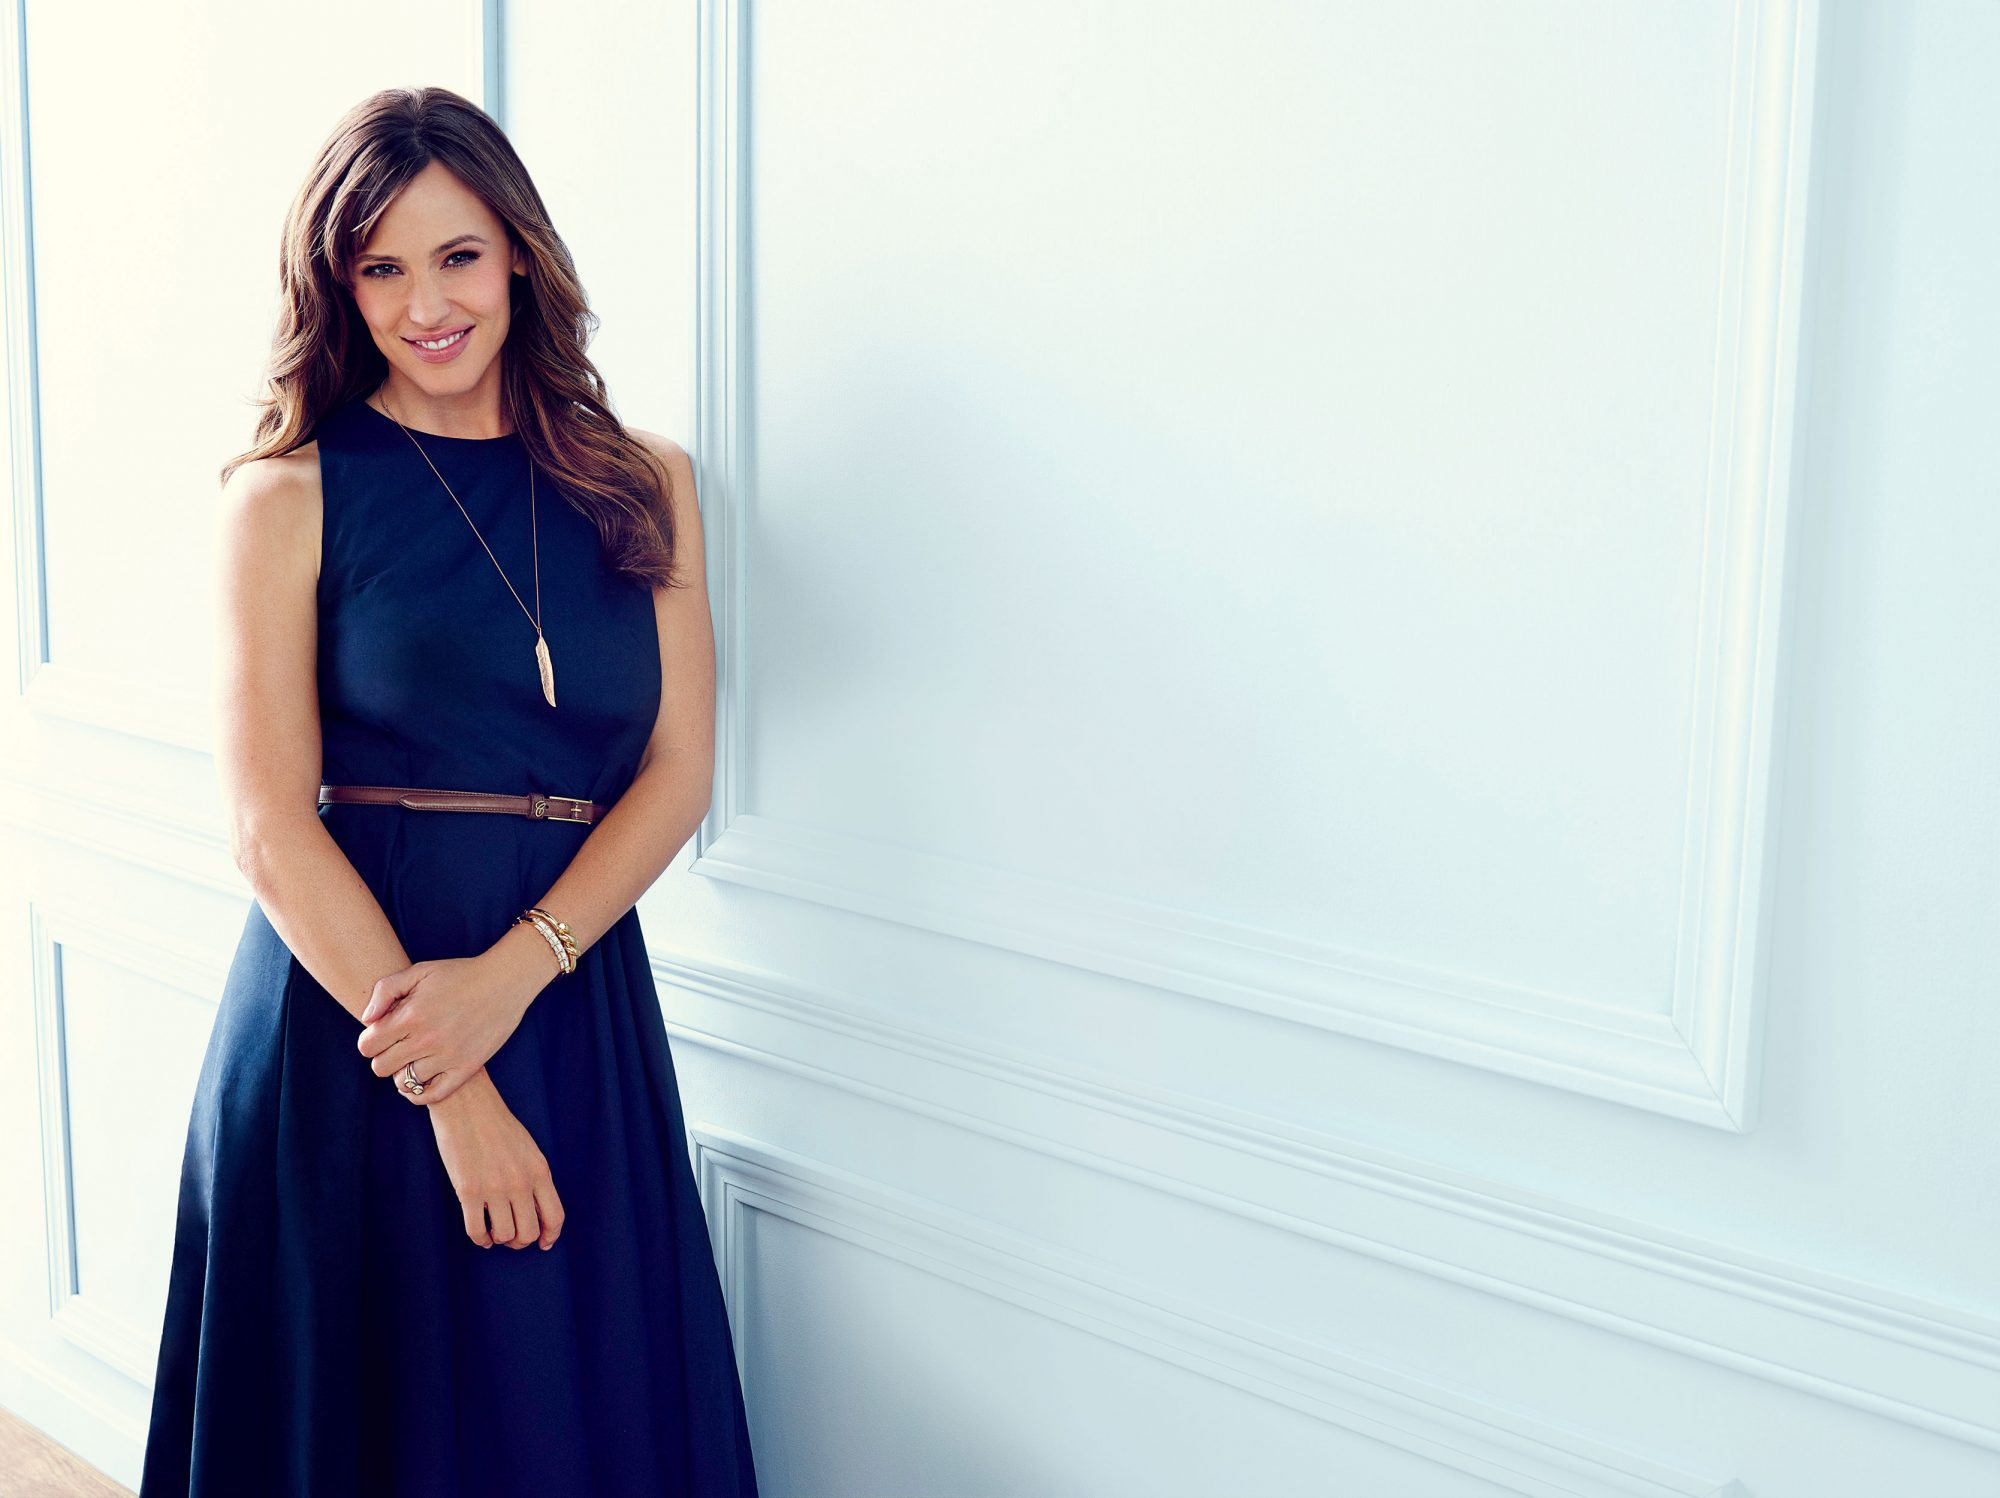 Jennifer Garner wearing Navy Dress